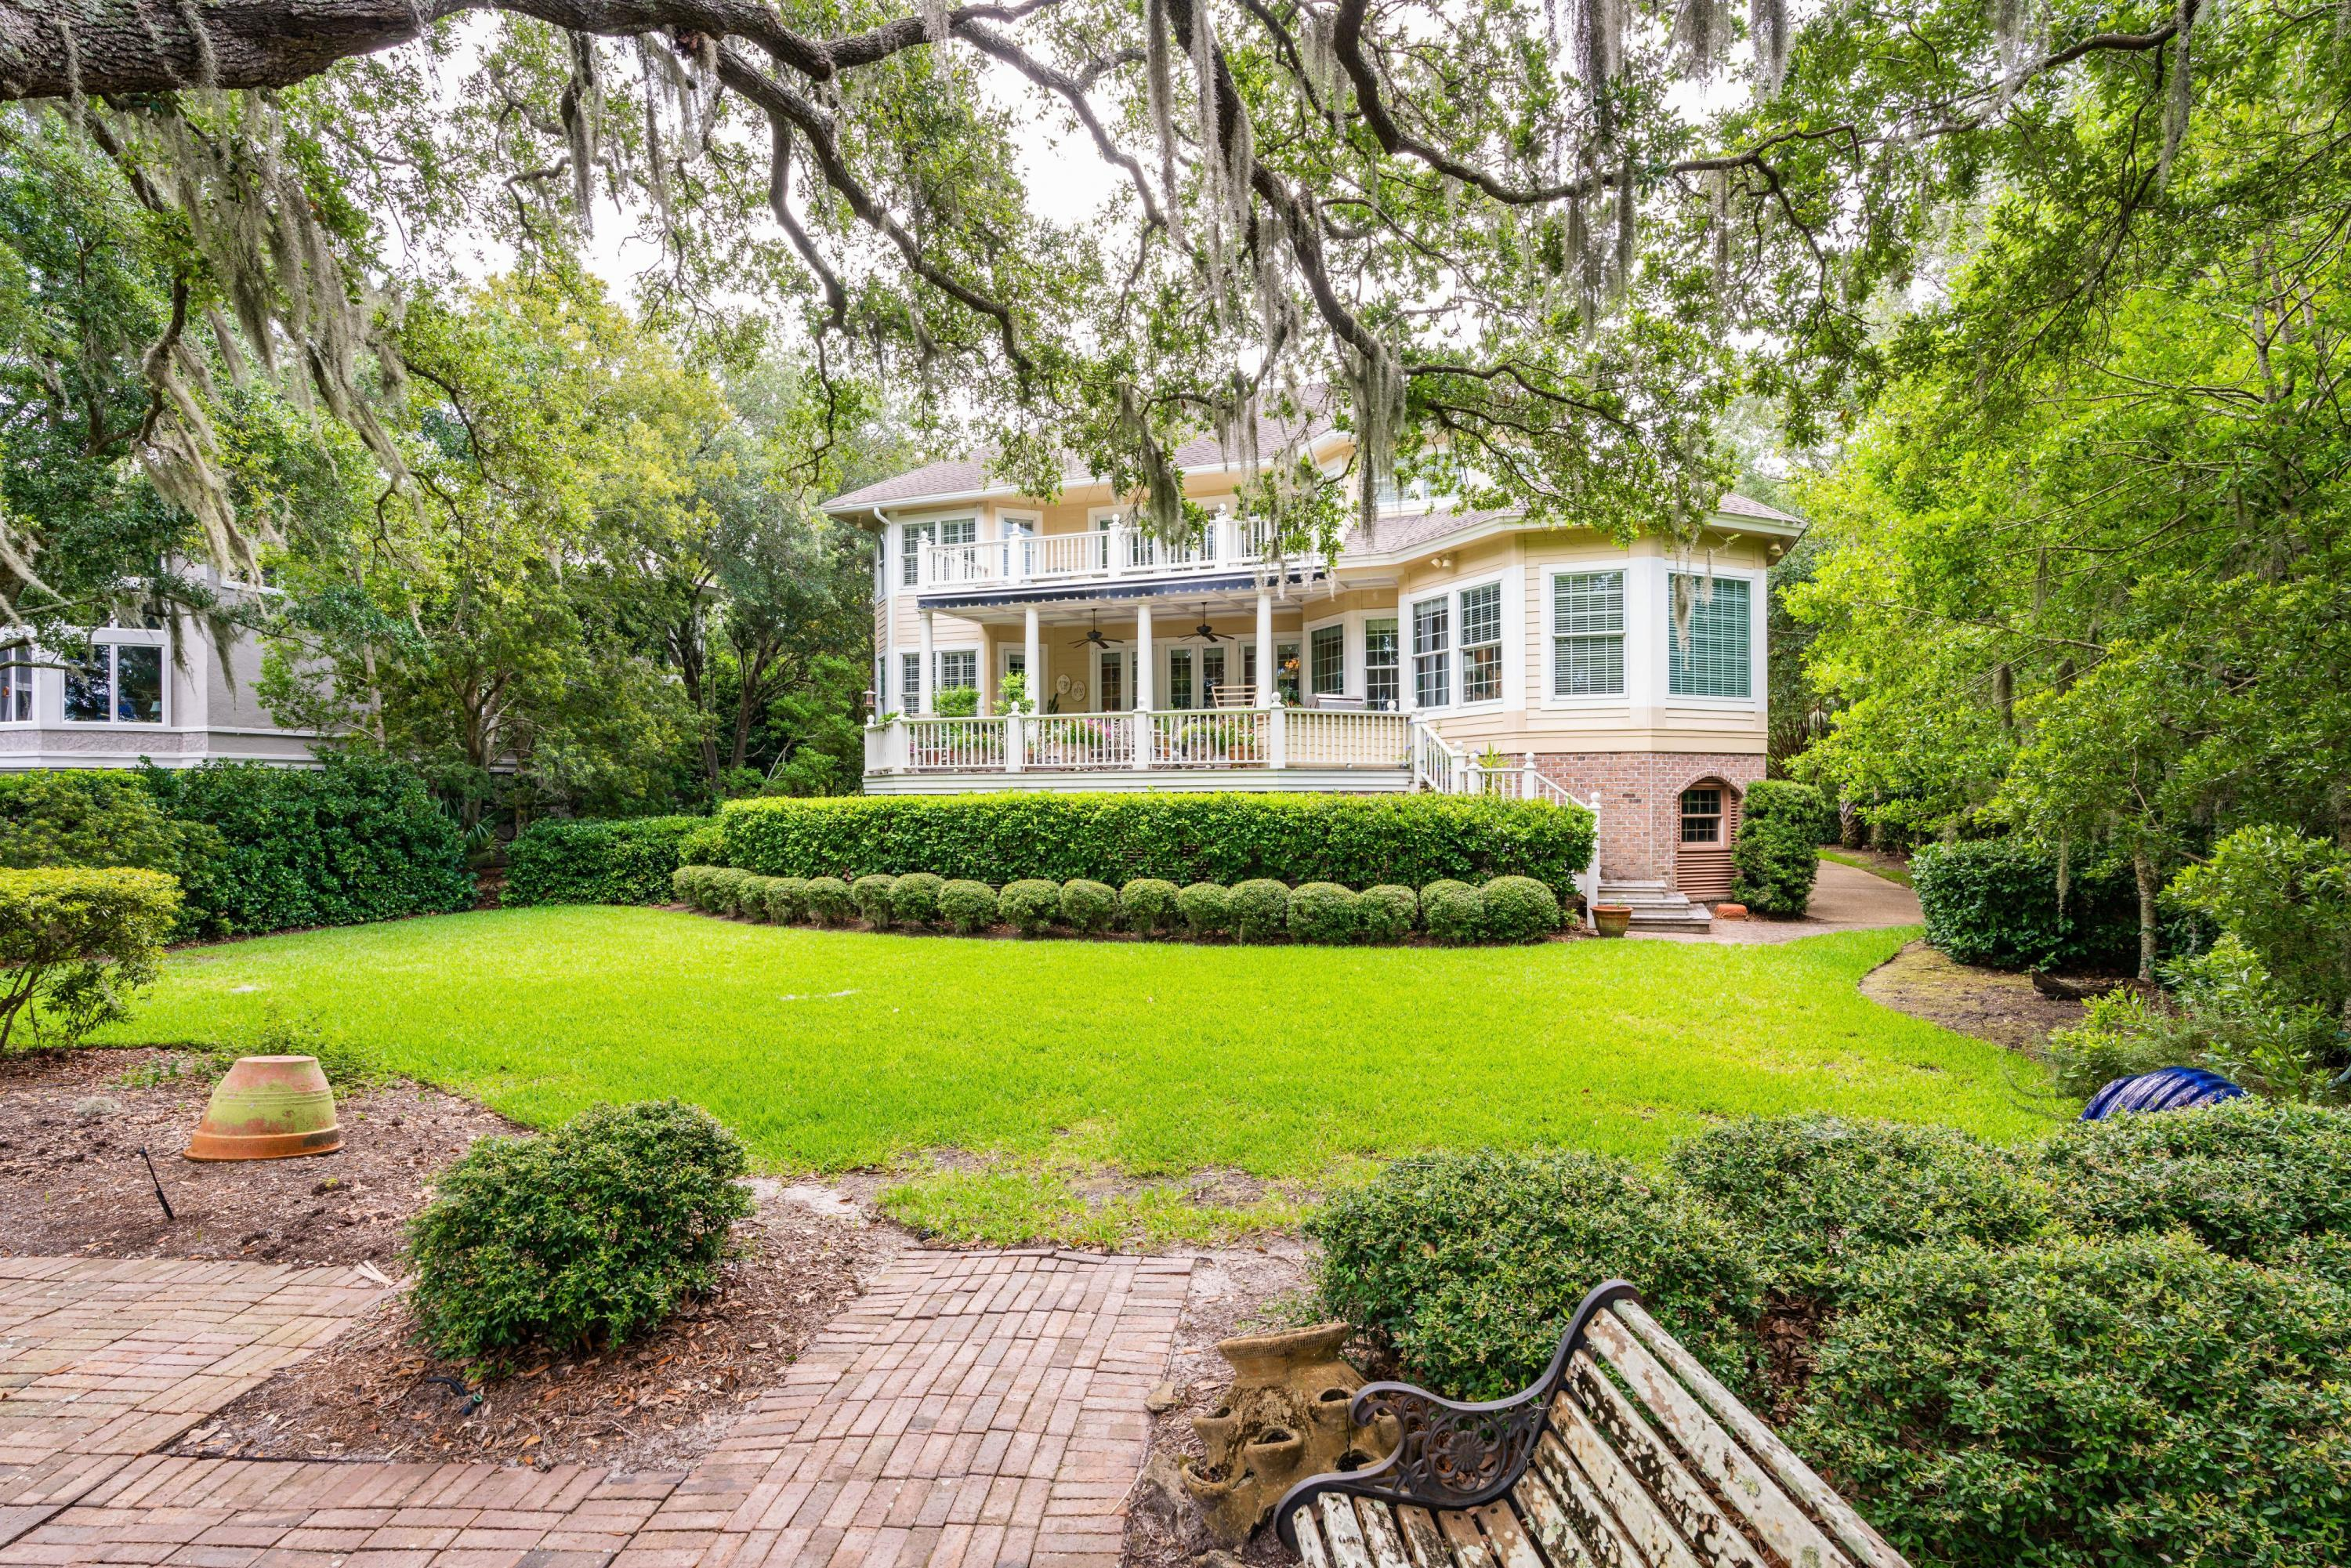 2260 Bohicket Creek Pl Place Johns Island, SC 29455